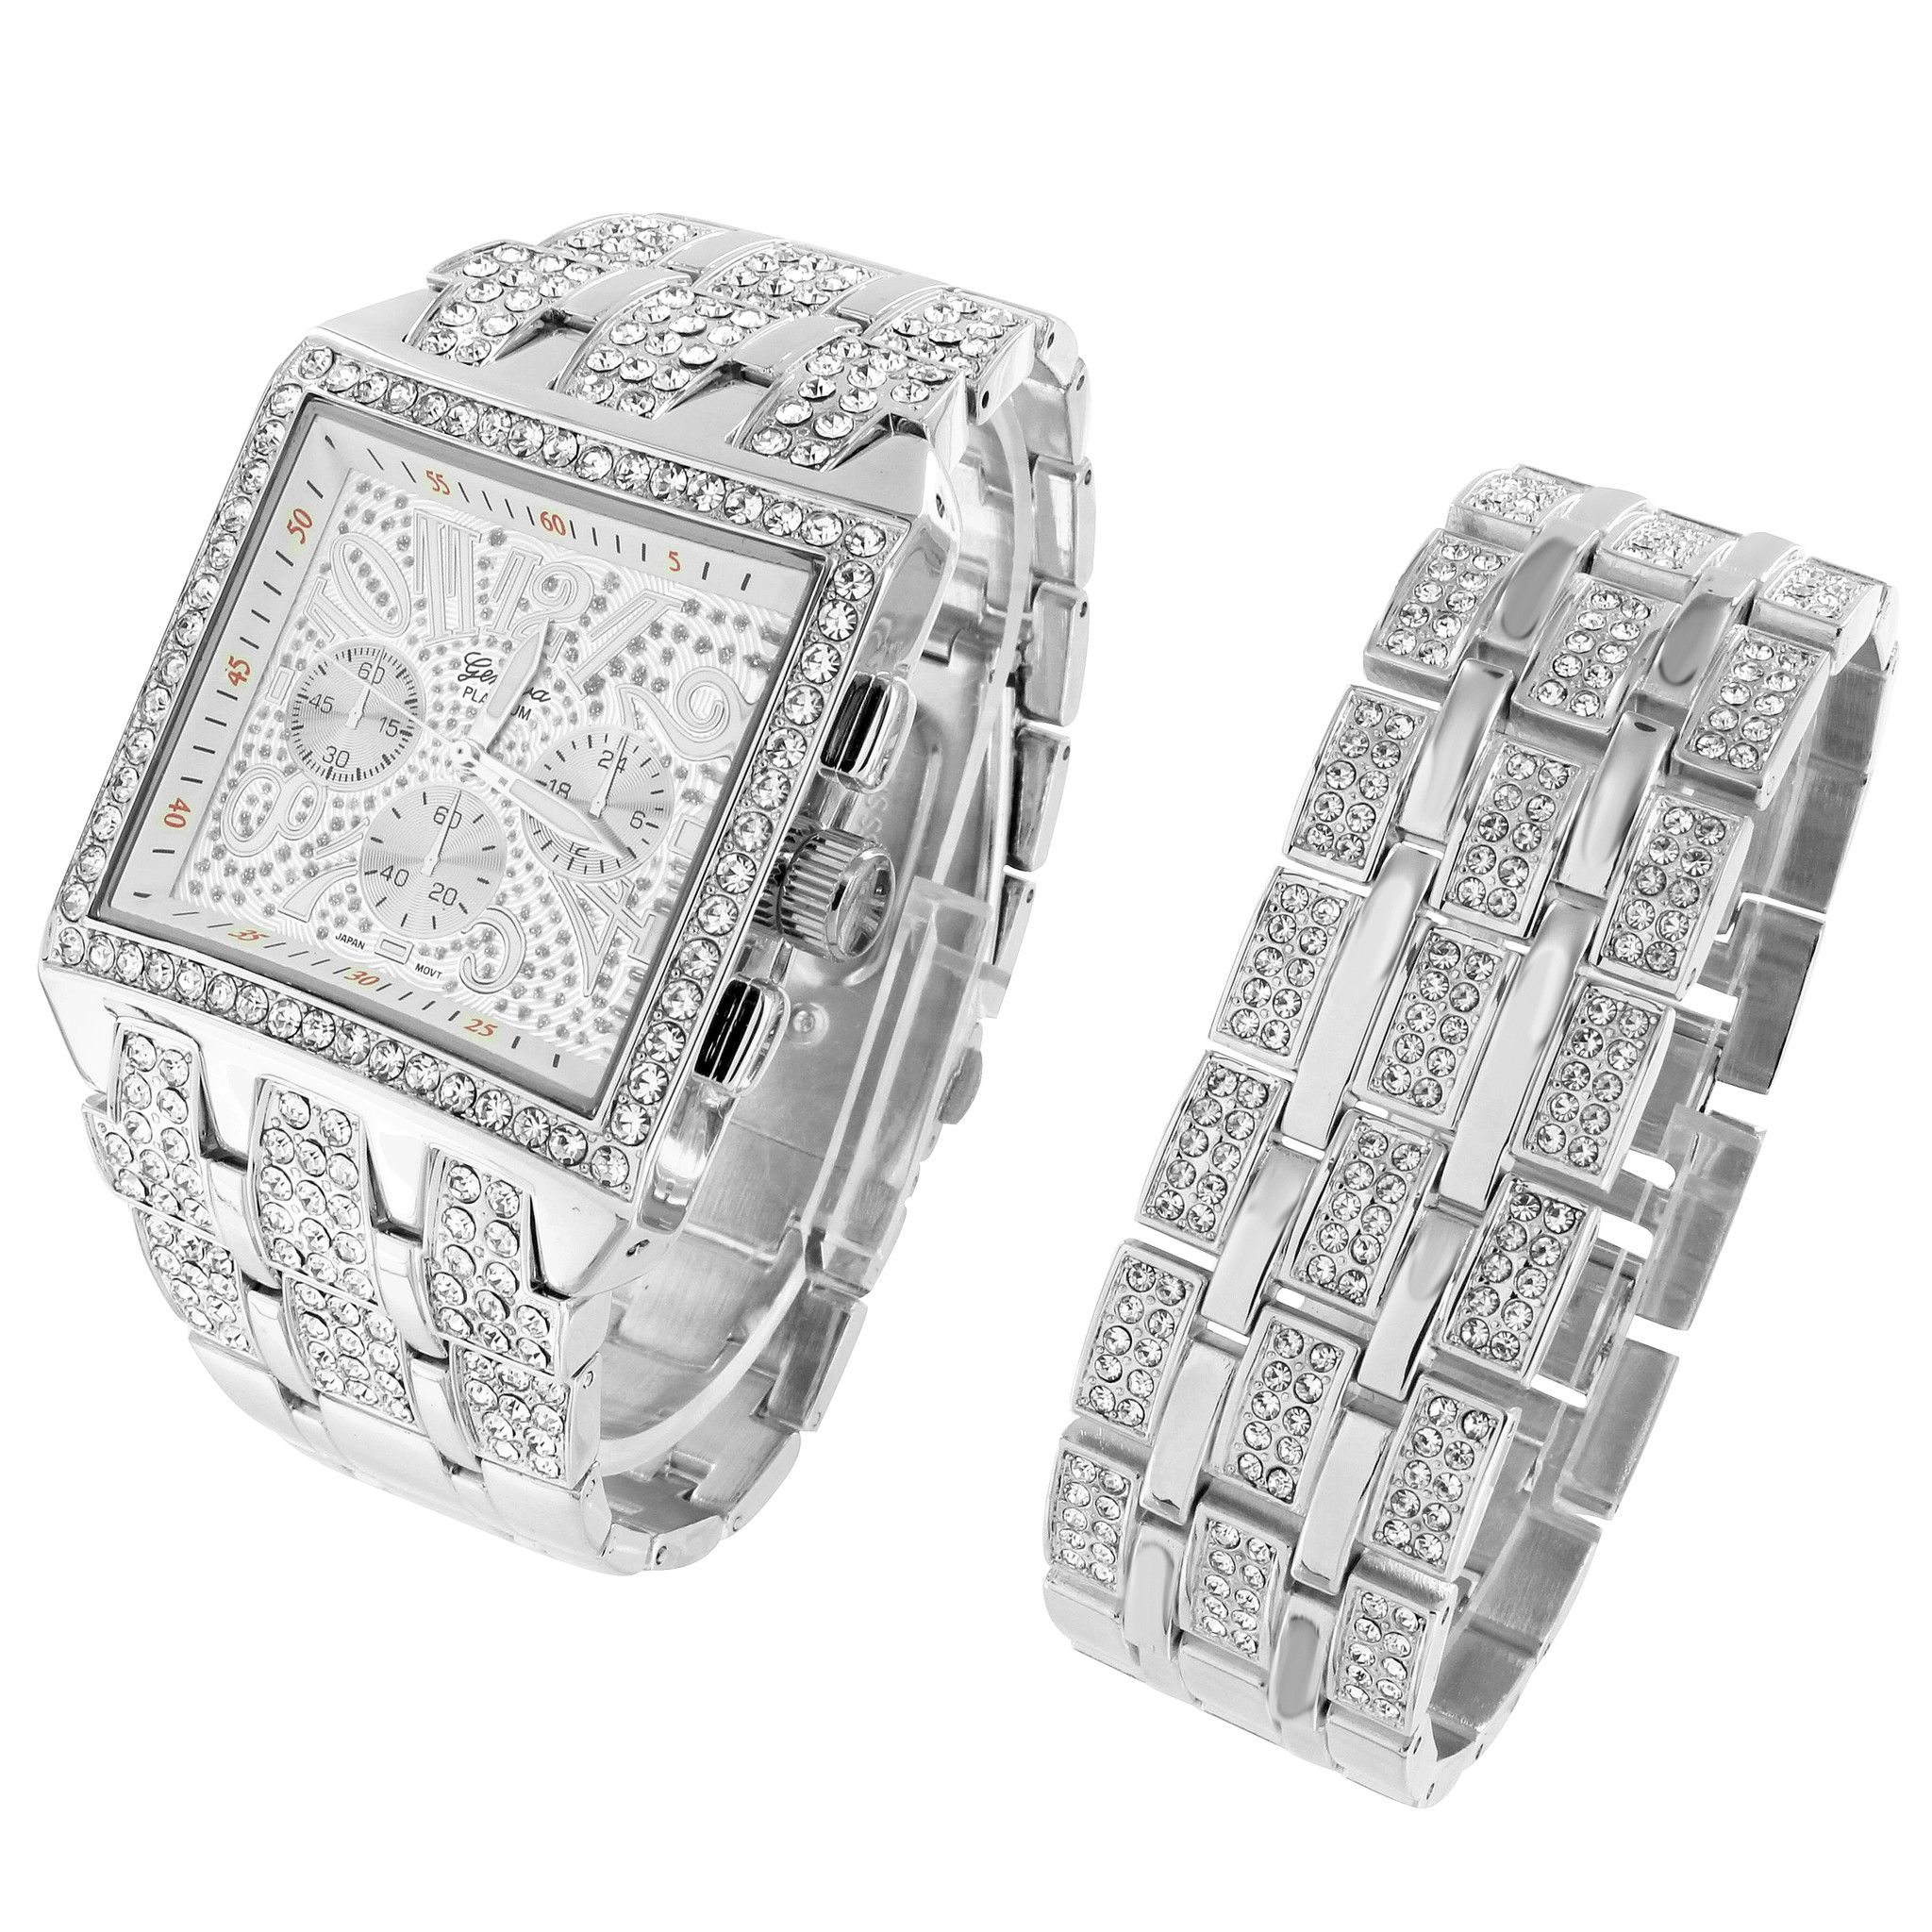 Iced out square face watch hip hop simulated diamonds mens